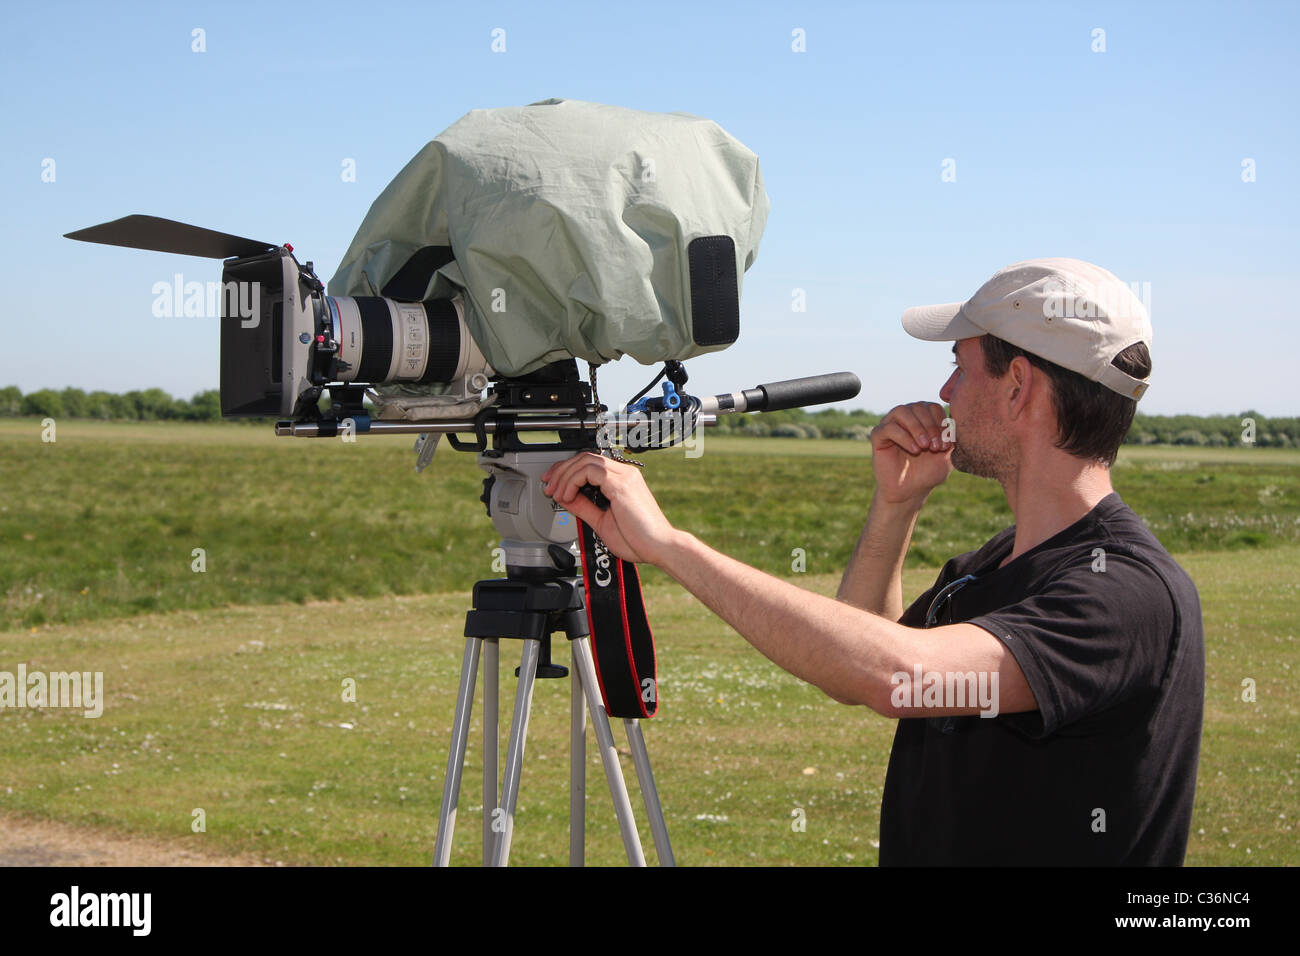 Canon 7d dslr being used as a video camera - Stock Image